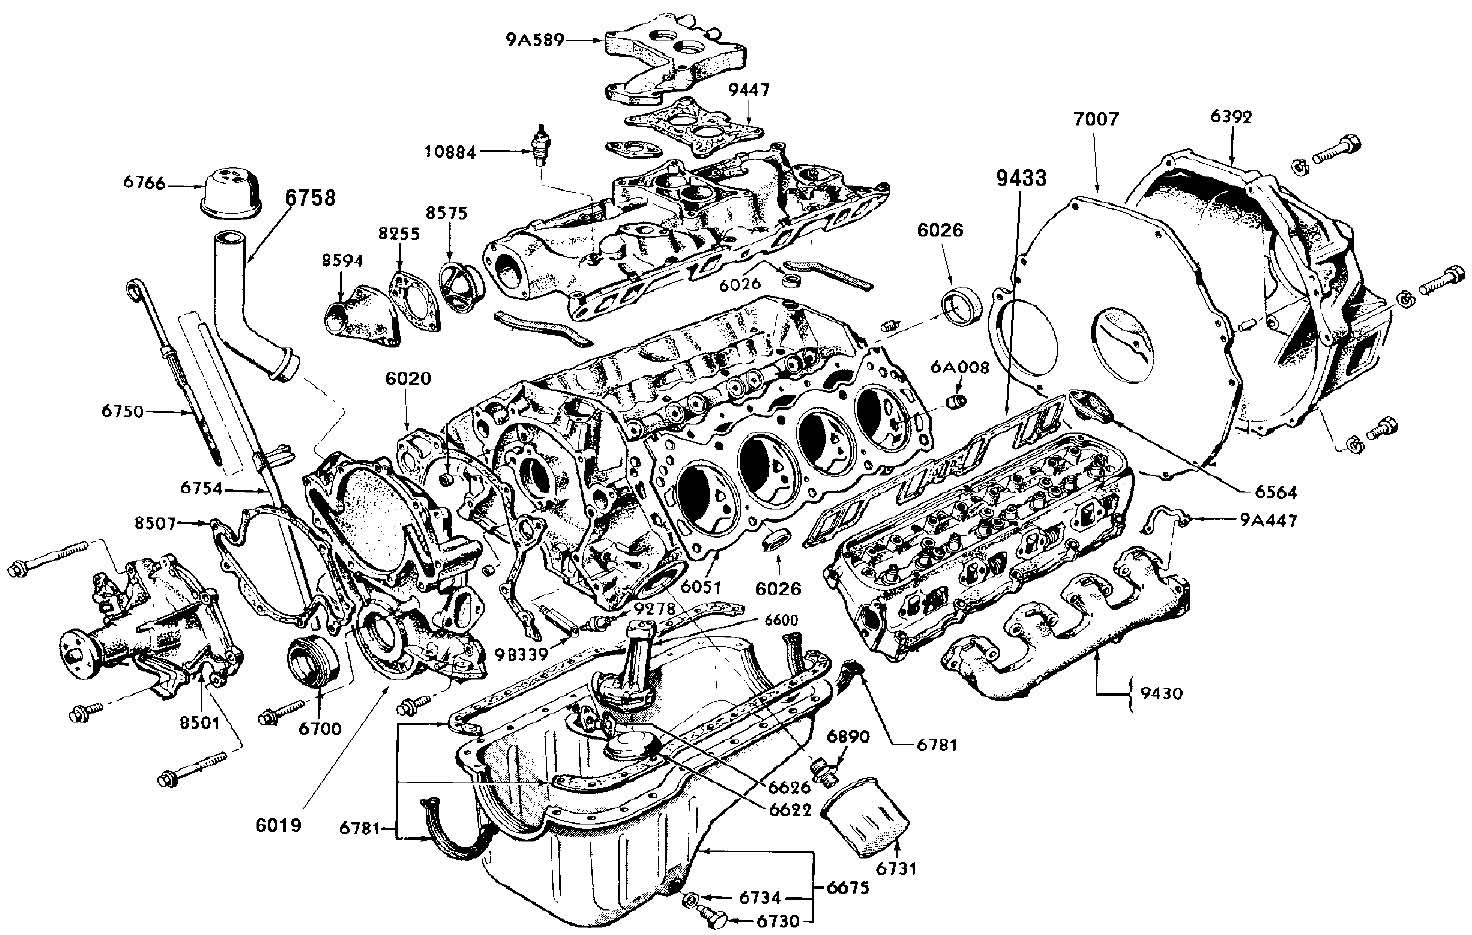 specs ford 289 engine diagram 289 ford engine diagram e27 wiring diagram  289 ford engine diagram e27 wiring